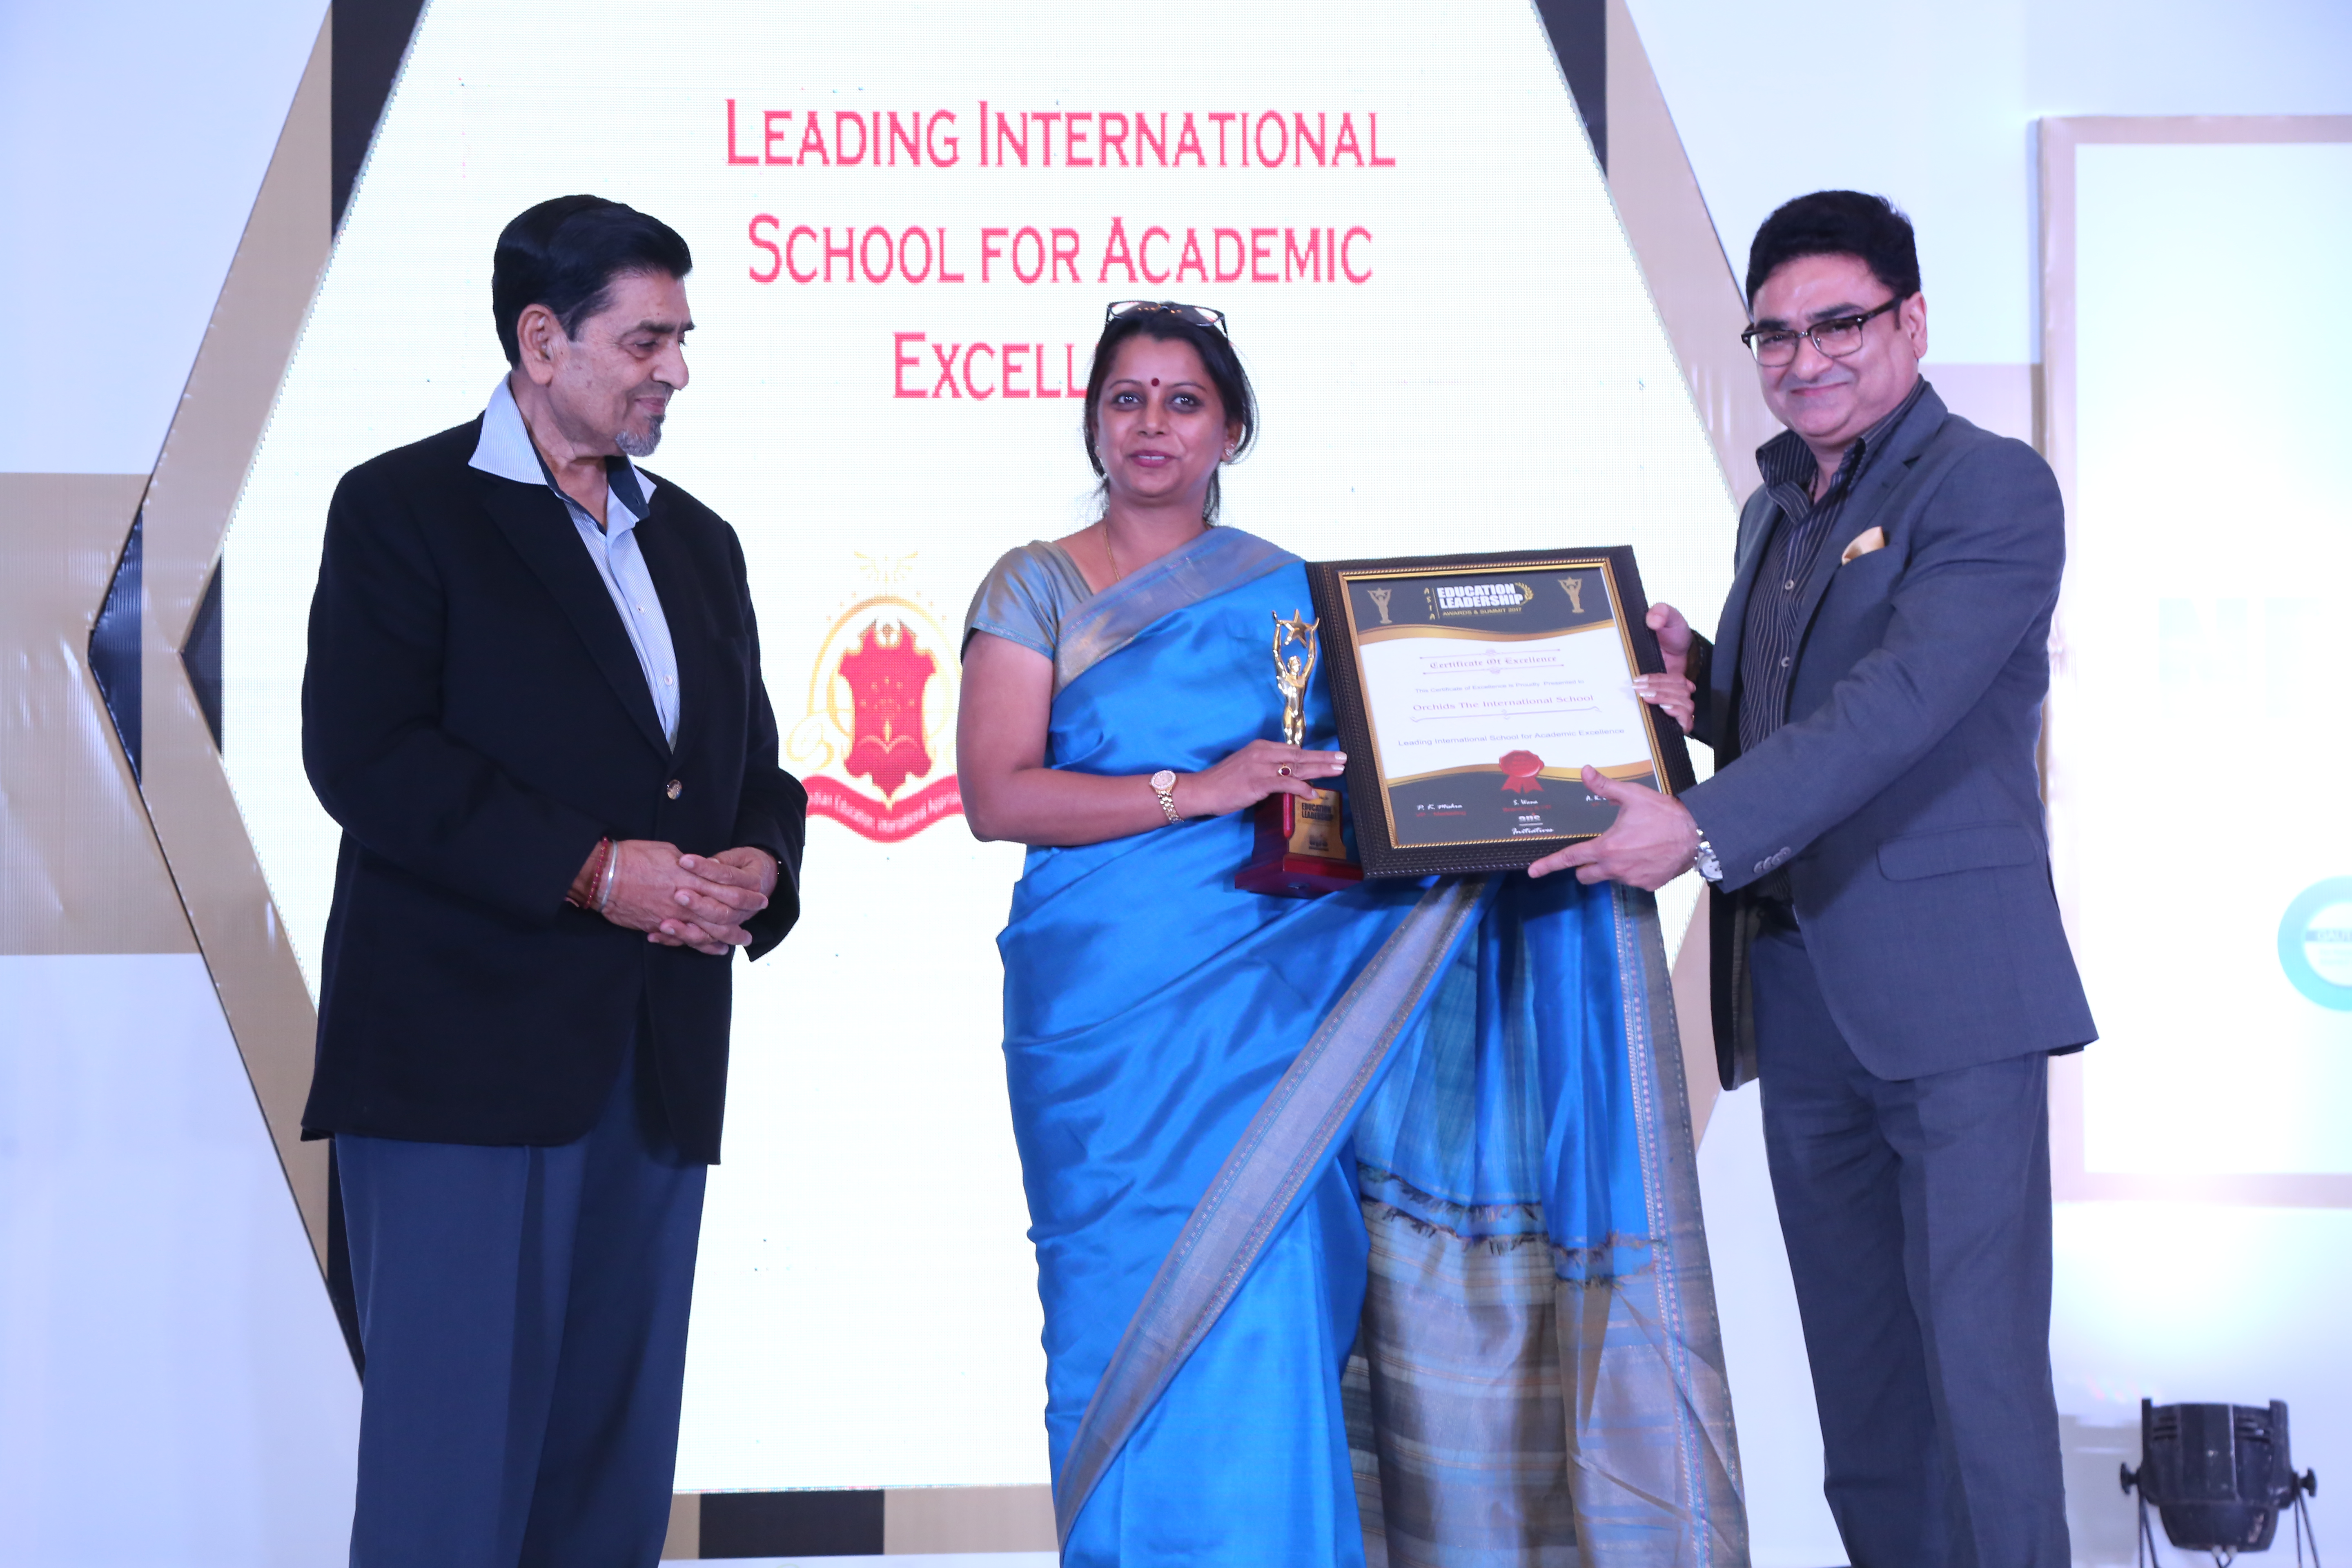 leading international school for academic excellence